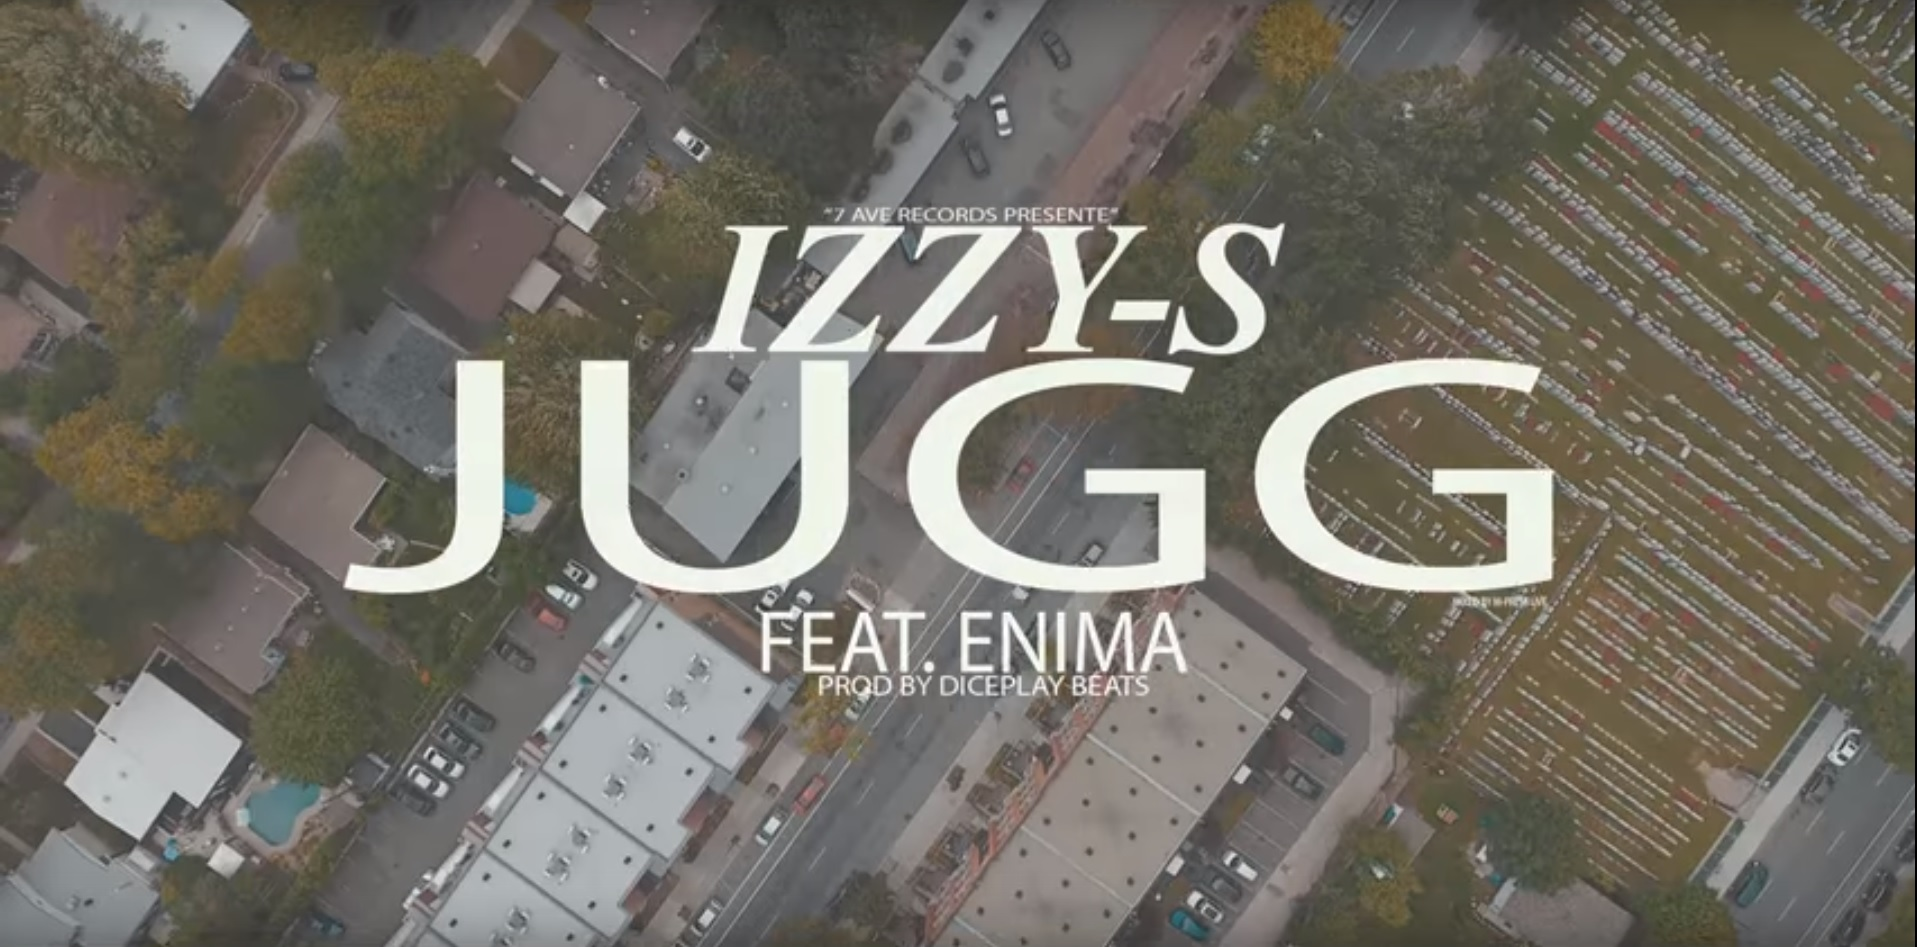 Izzy-S feat Enima – JUGG (Clip Officiel)